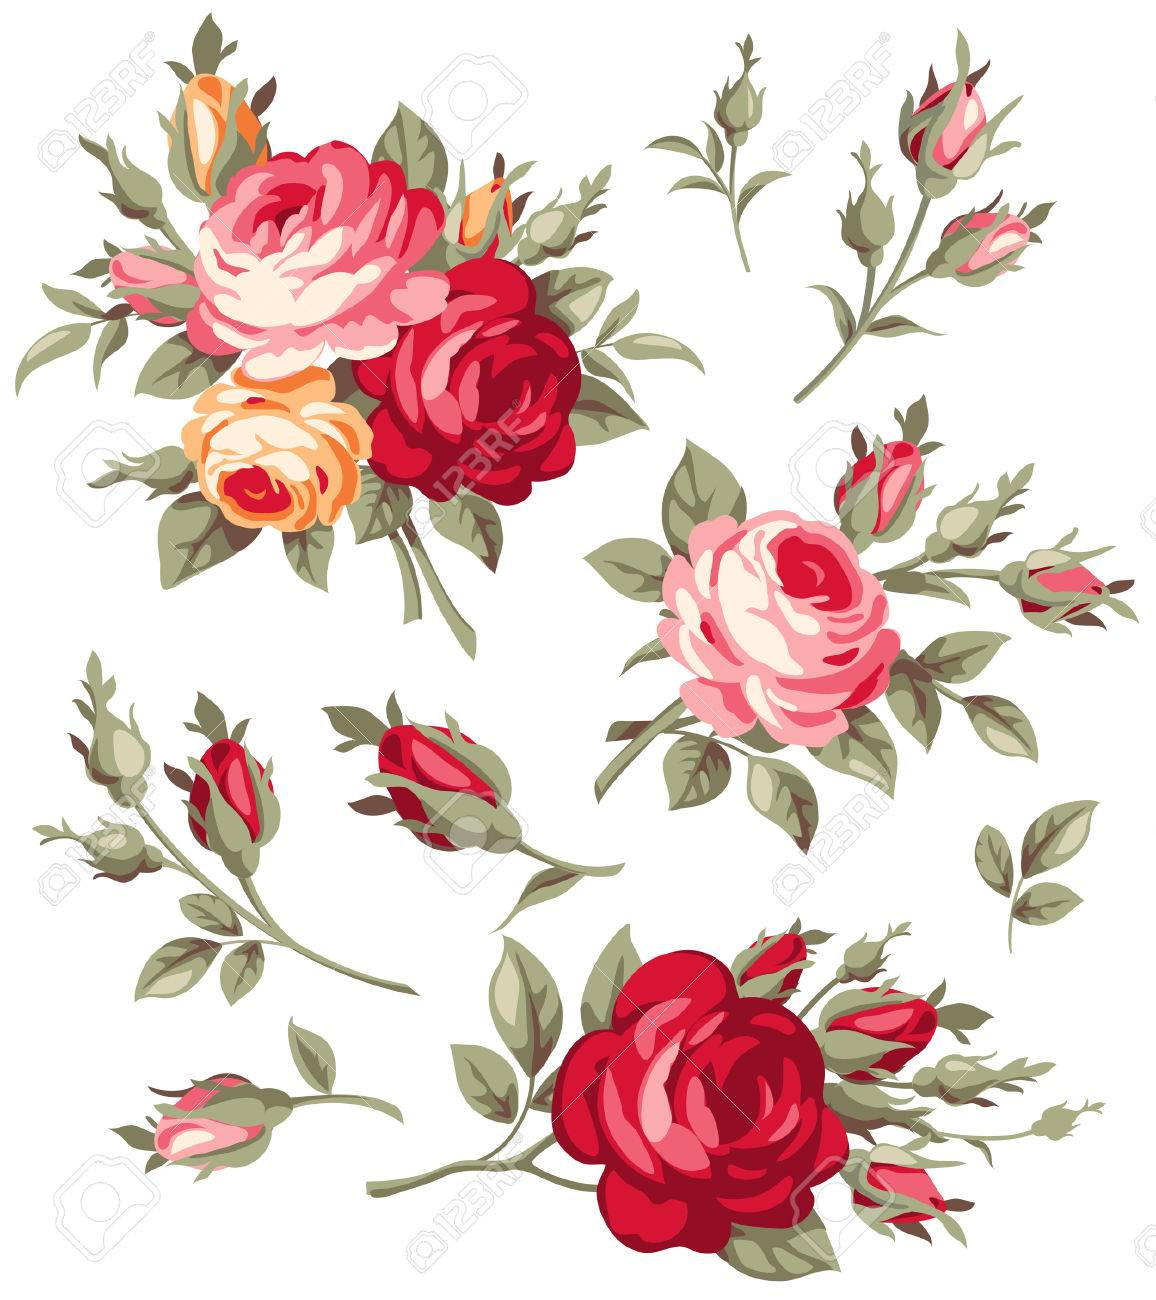 Decorative vintage rose and bud. Vector blooming flowers set for your design - 67955553